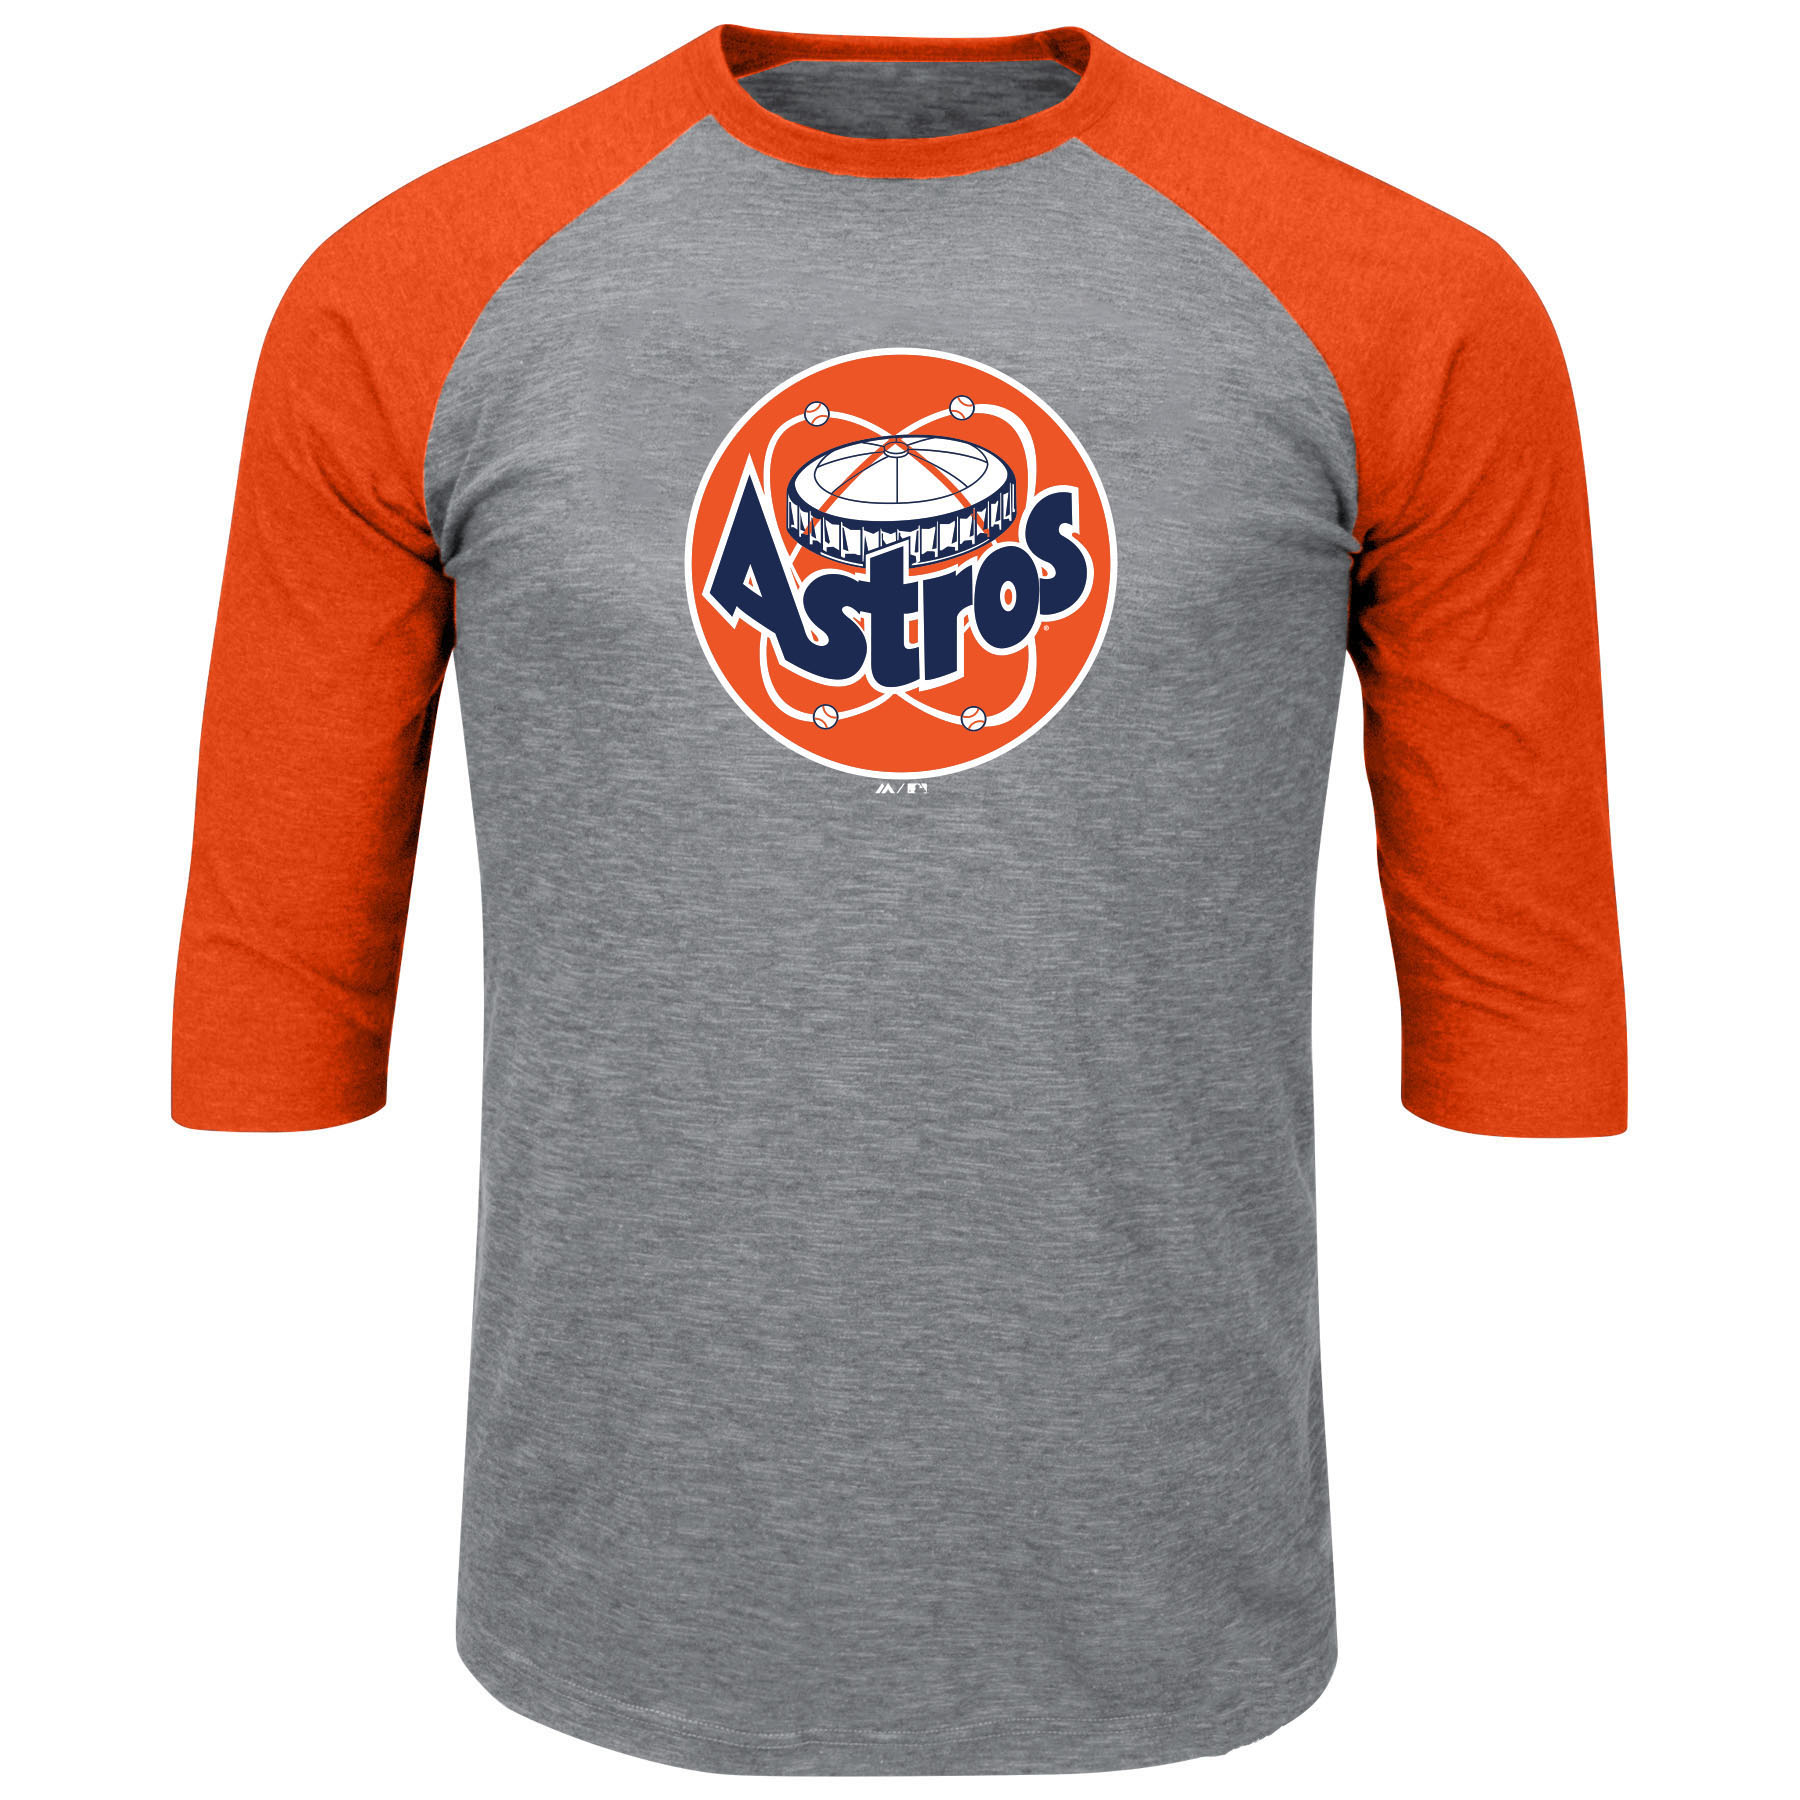 Houston Astros Majestic Big & Tall Cooperstown Collection 3/4-Sleeve Raglan T-Shirt - Heathered Gray/Orange